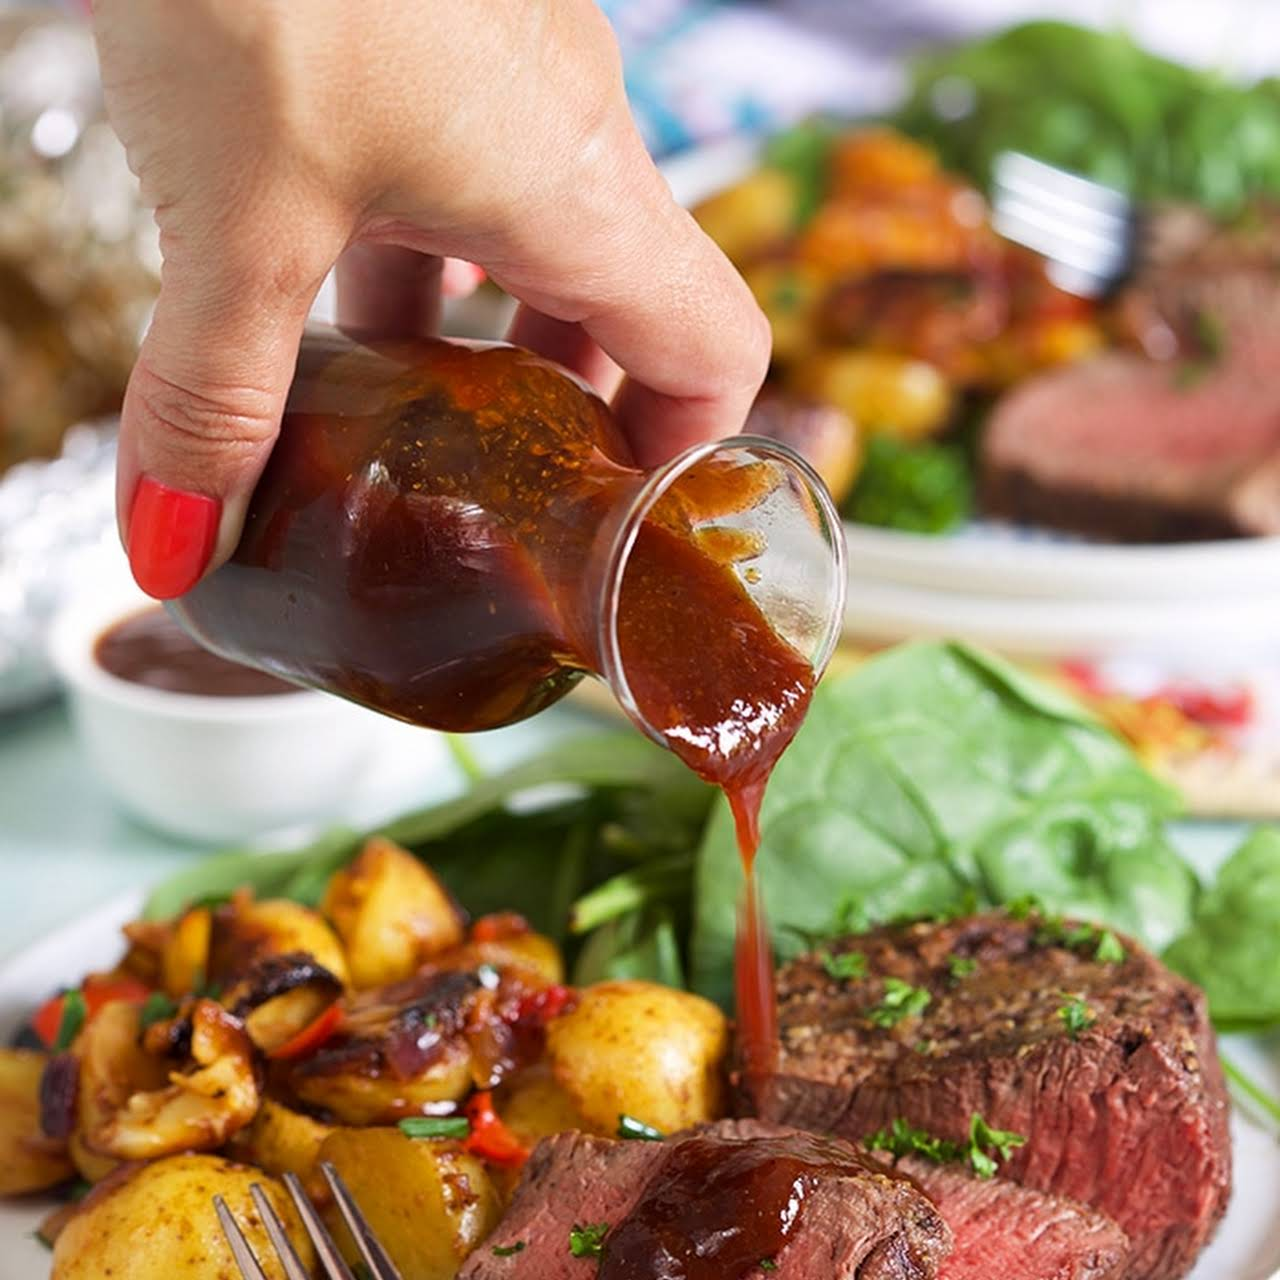 10 Best Steak Sauce For Fillet Steak Recipes Yummly